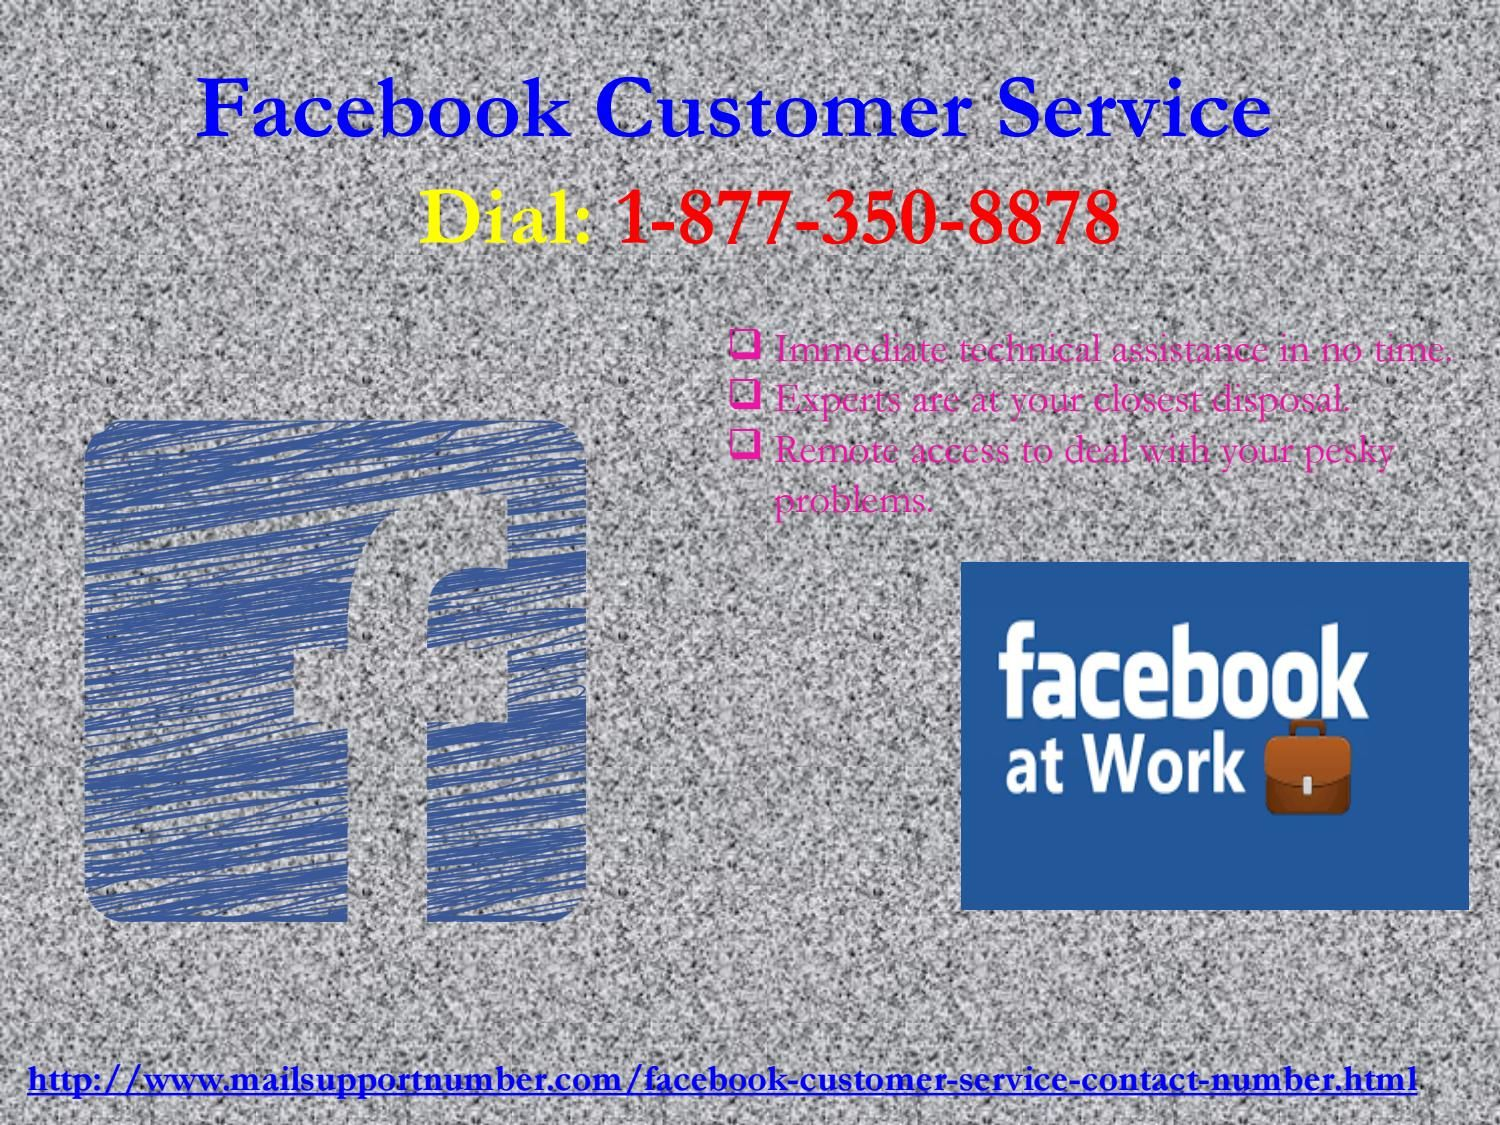 Abolish spreading scams on Facebook via Facebook Customer Service 1-877-3508878To overcome the destructive scams spreading on Facebook, all you need to do is to make a call at our toll-free number 1-877-350-8878 where your call will be attended by our sedulous techies who will provide you the simplest possible solution for all your Facebook issues. Just acquire our Facebook Customer Service now. http://www.mailsupportnumber.com/facebook-customer-service-contact-number.html